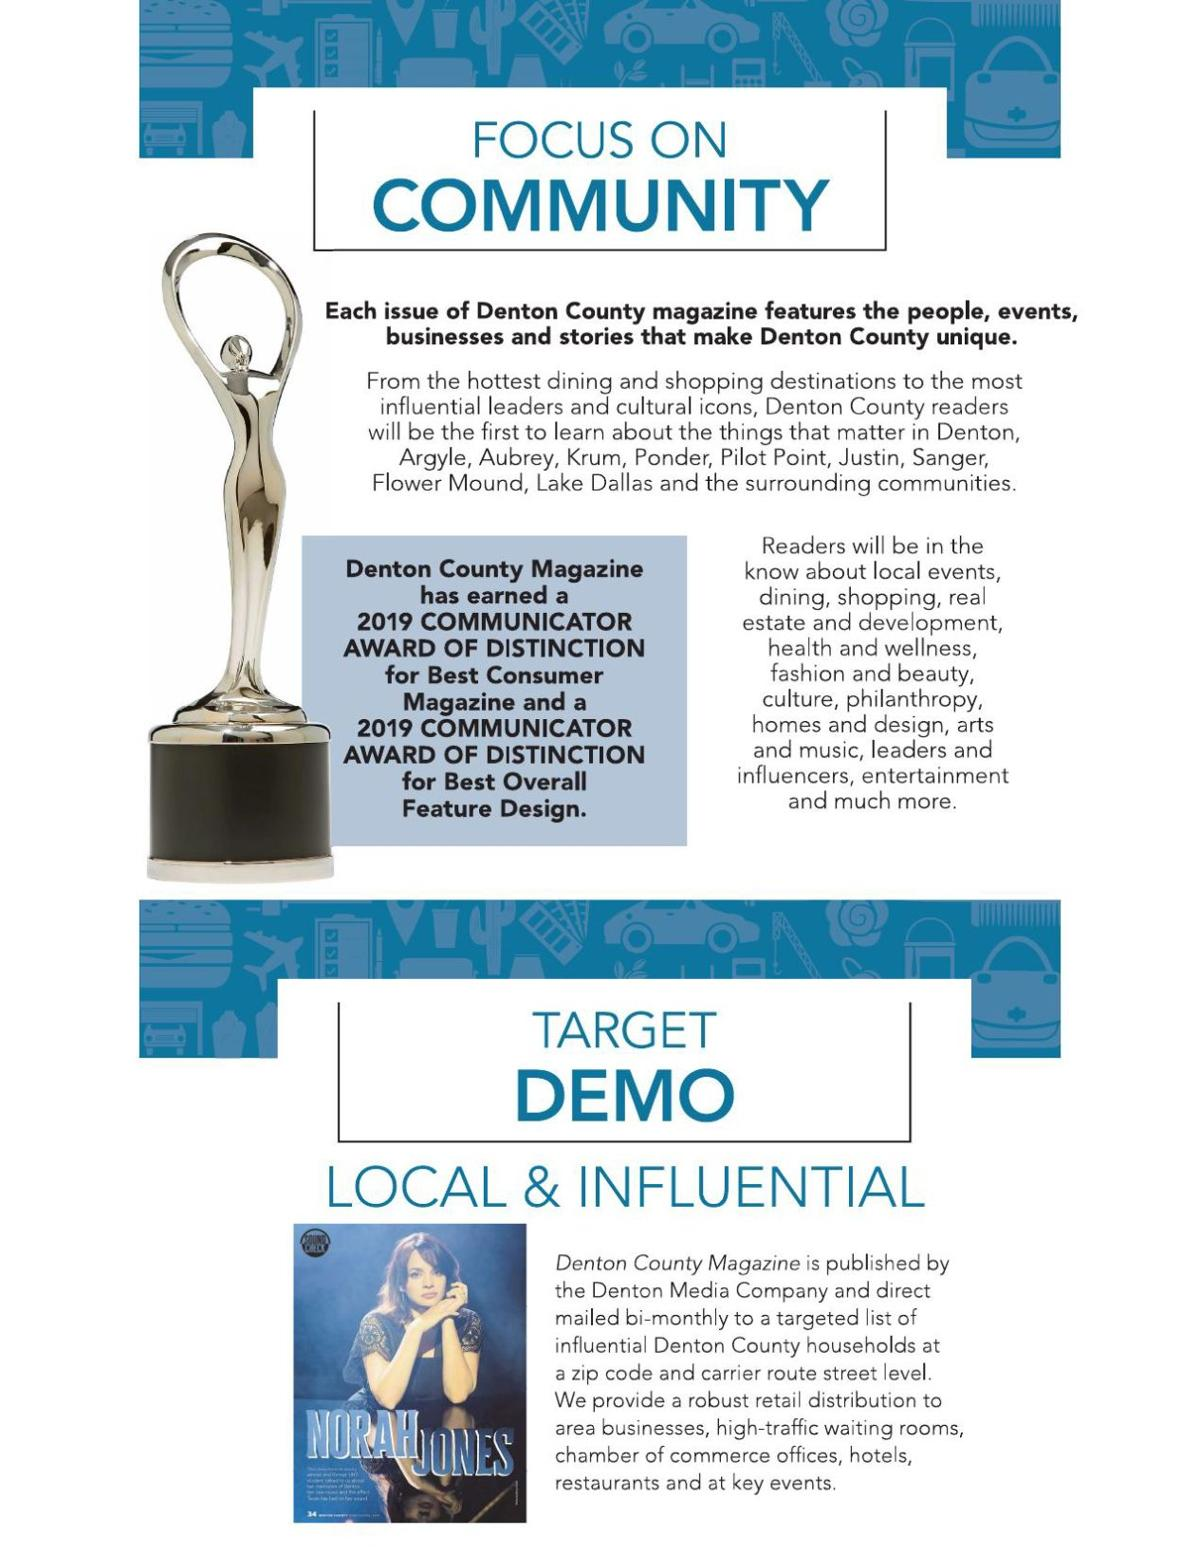 Focus on Community and Awards